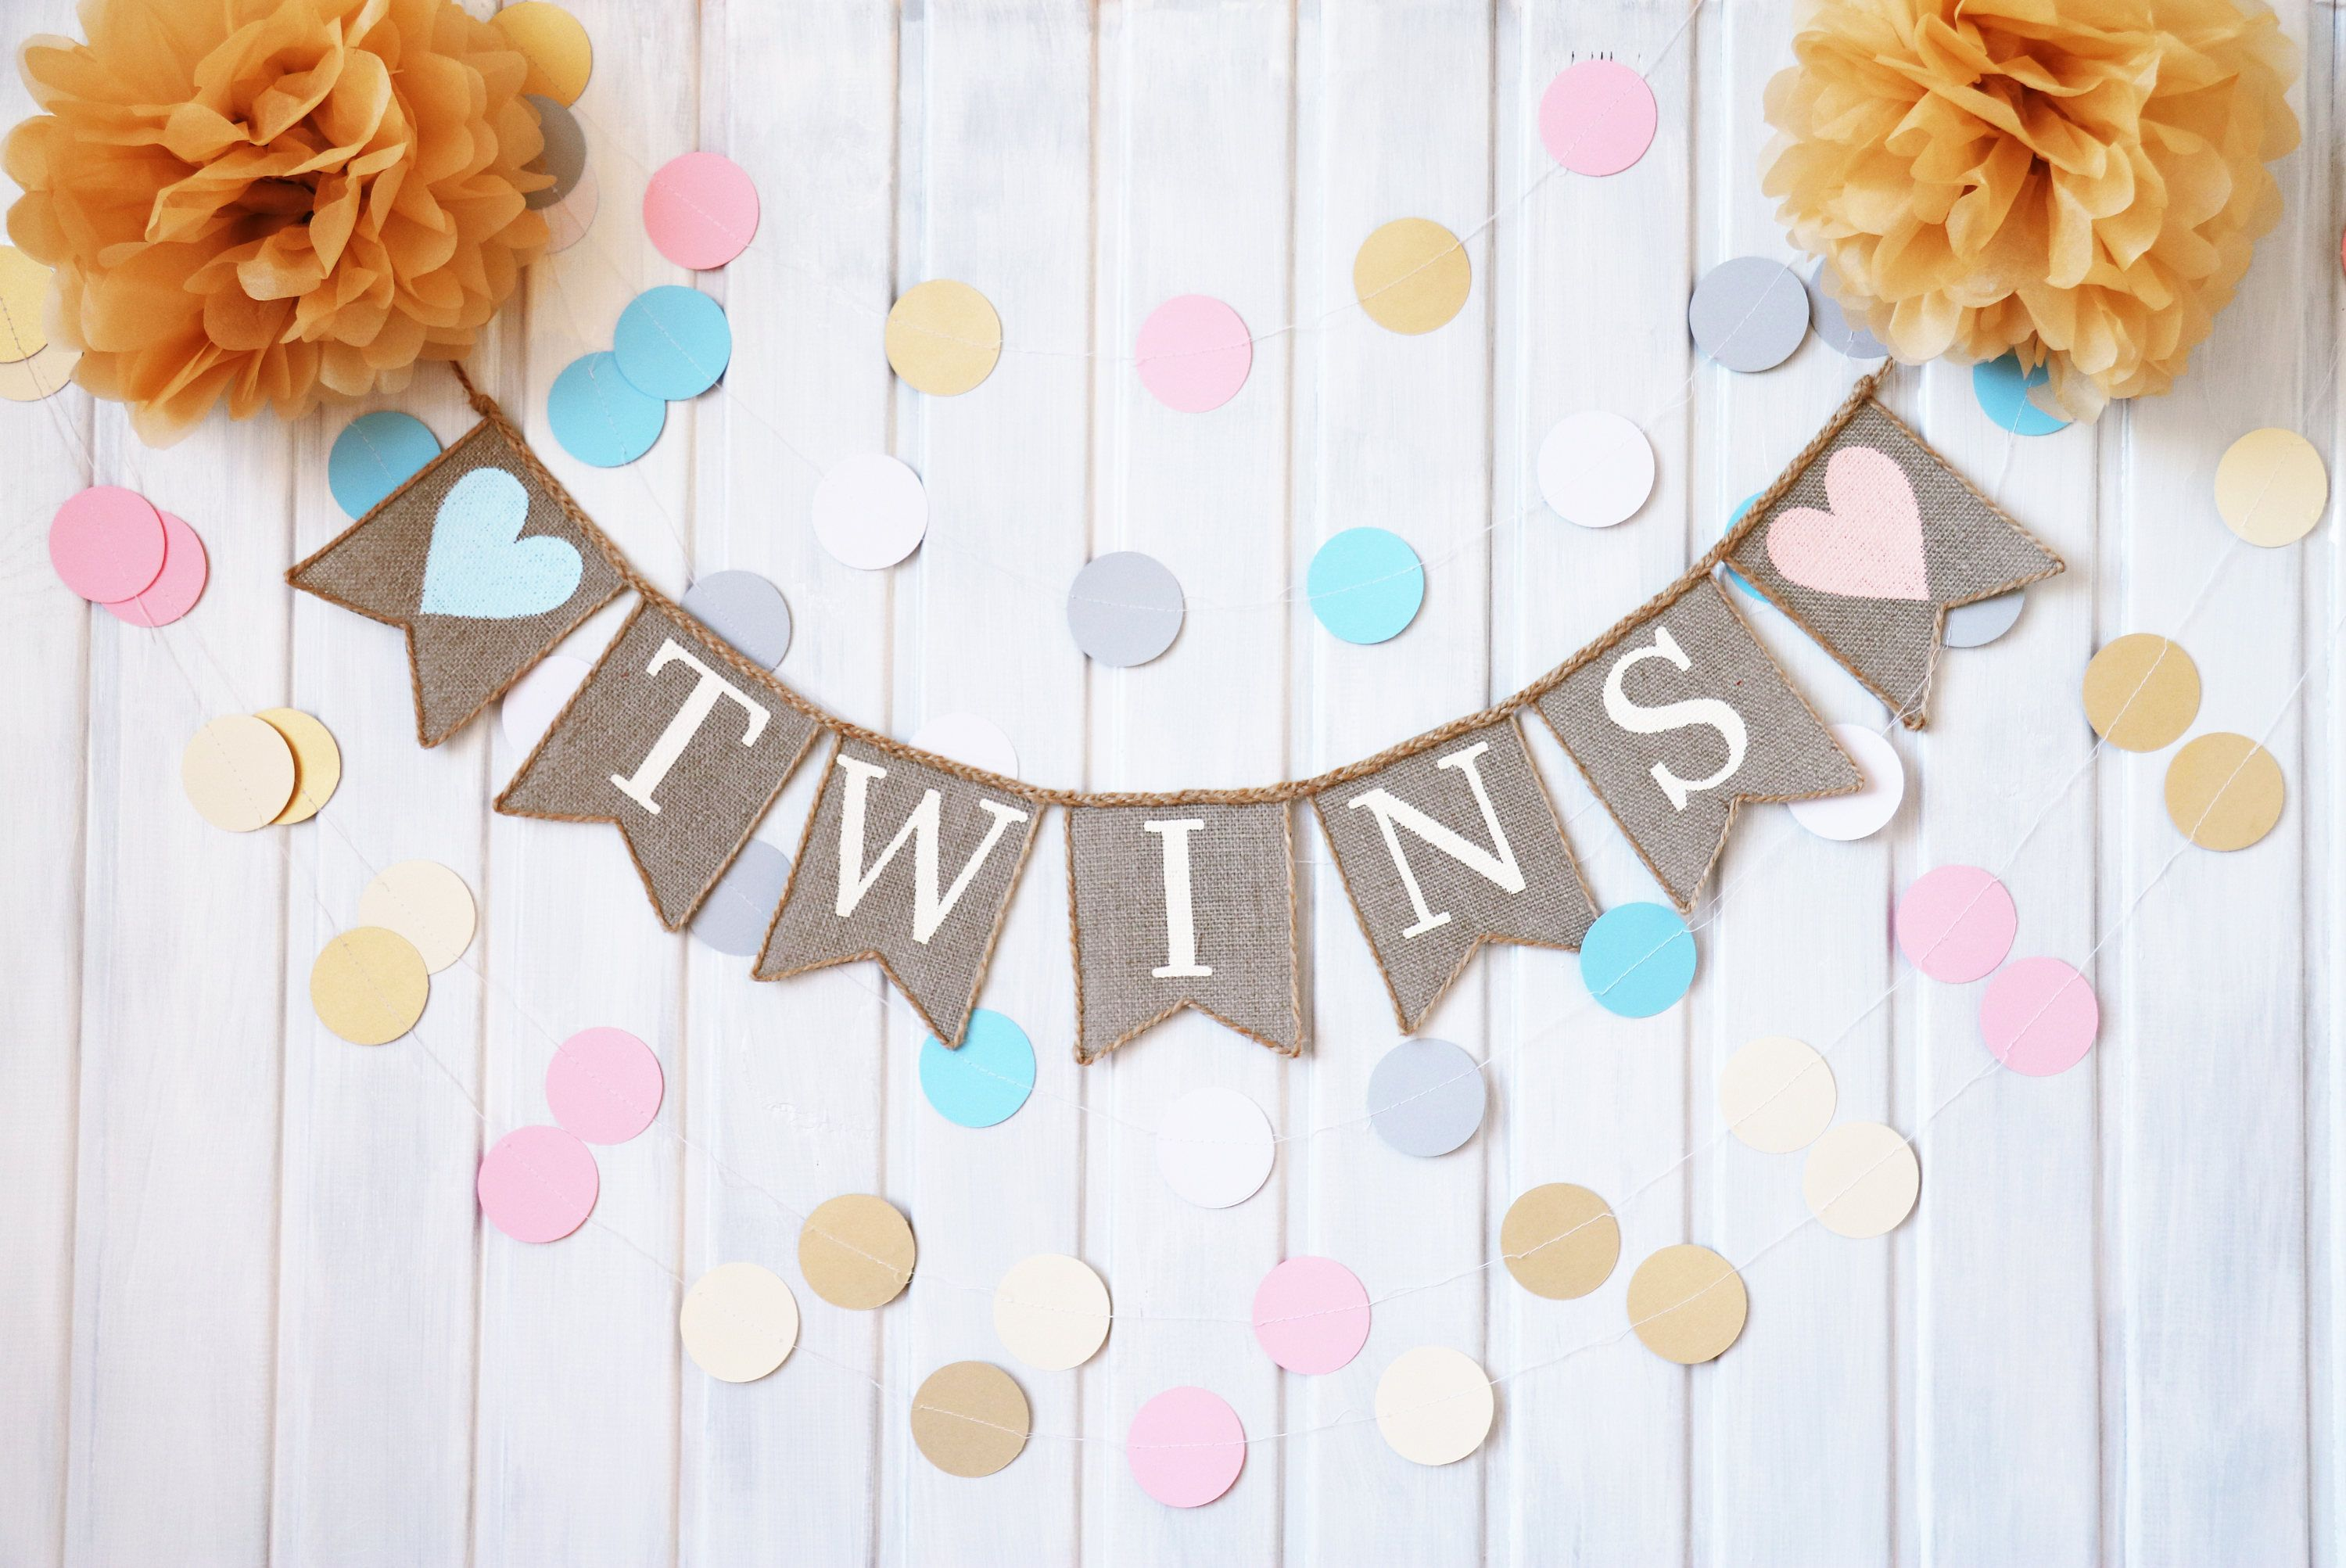 twins banner twins bunting twins baby shower decorations twins